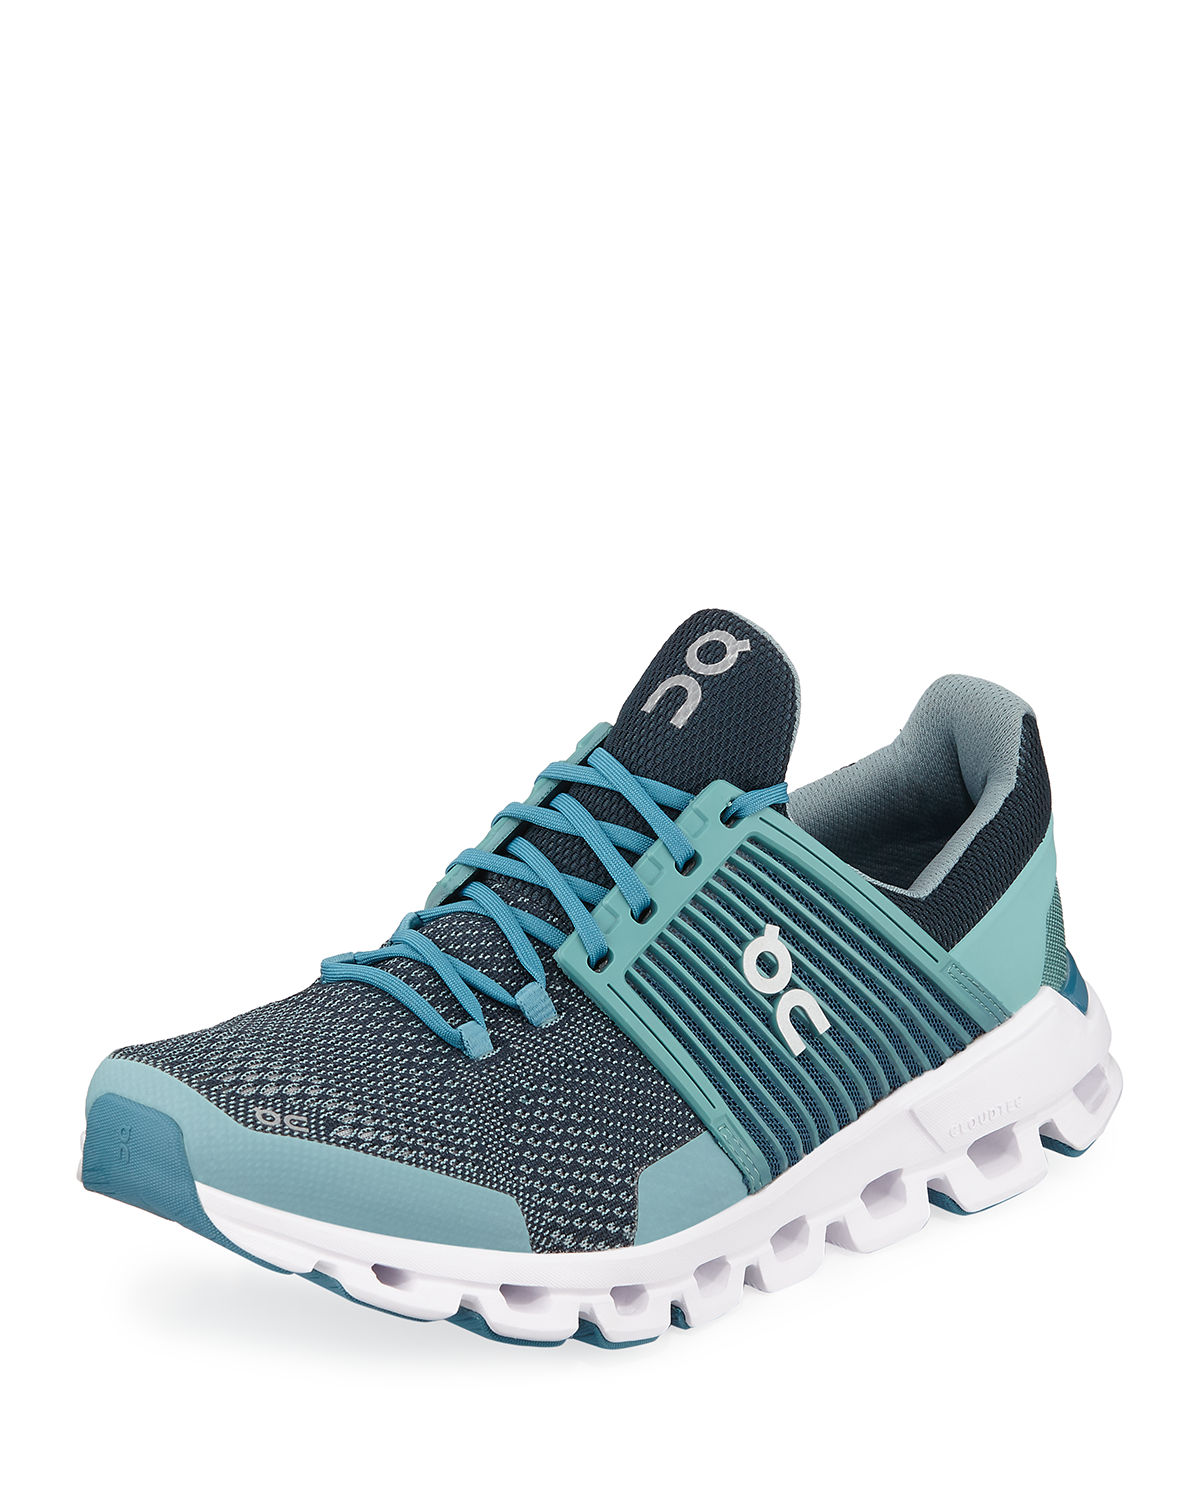 CloudSwift Cushioned Running Sneakers